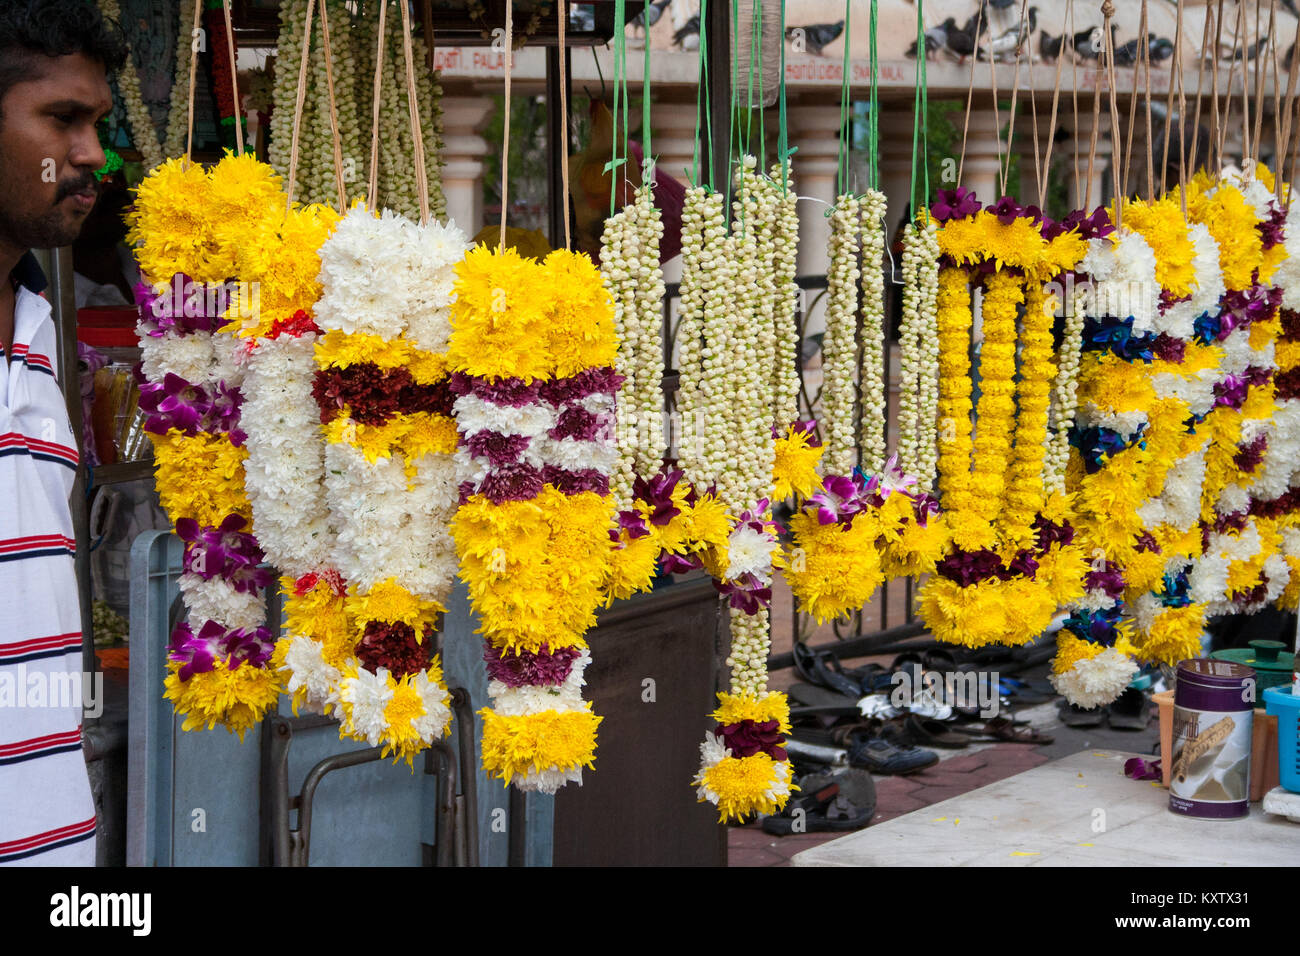 A vendor selling  flower garlands for the Hindu festival Diwali at Batu Caves, Selangor, Malaysia. Taken in November - Stock Image